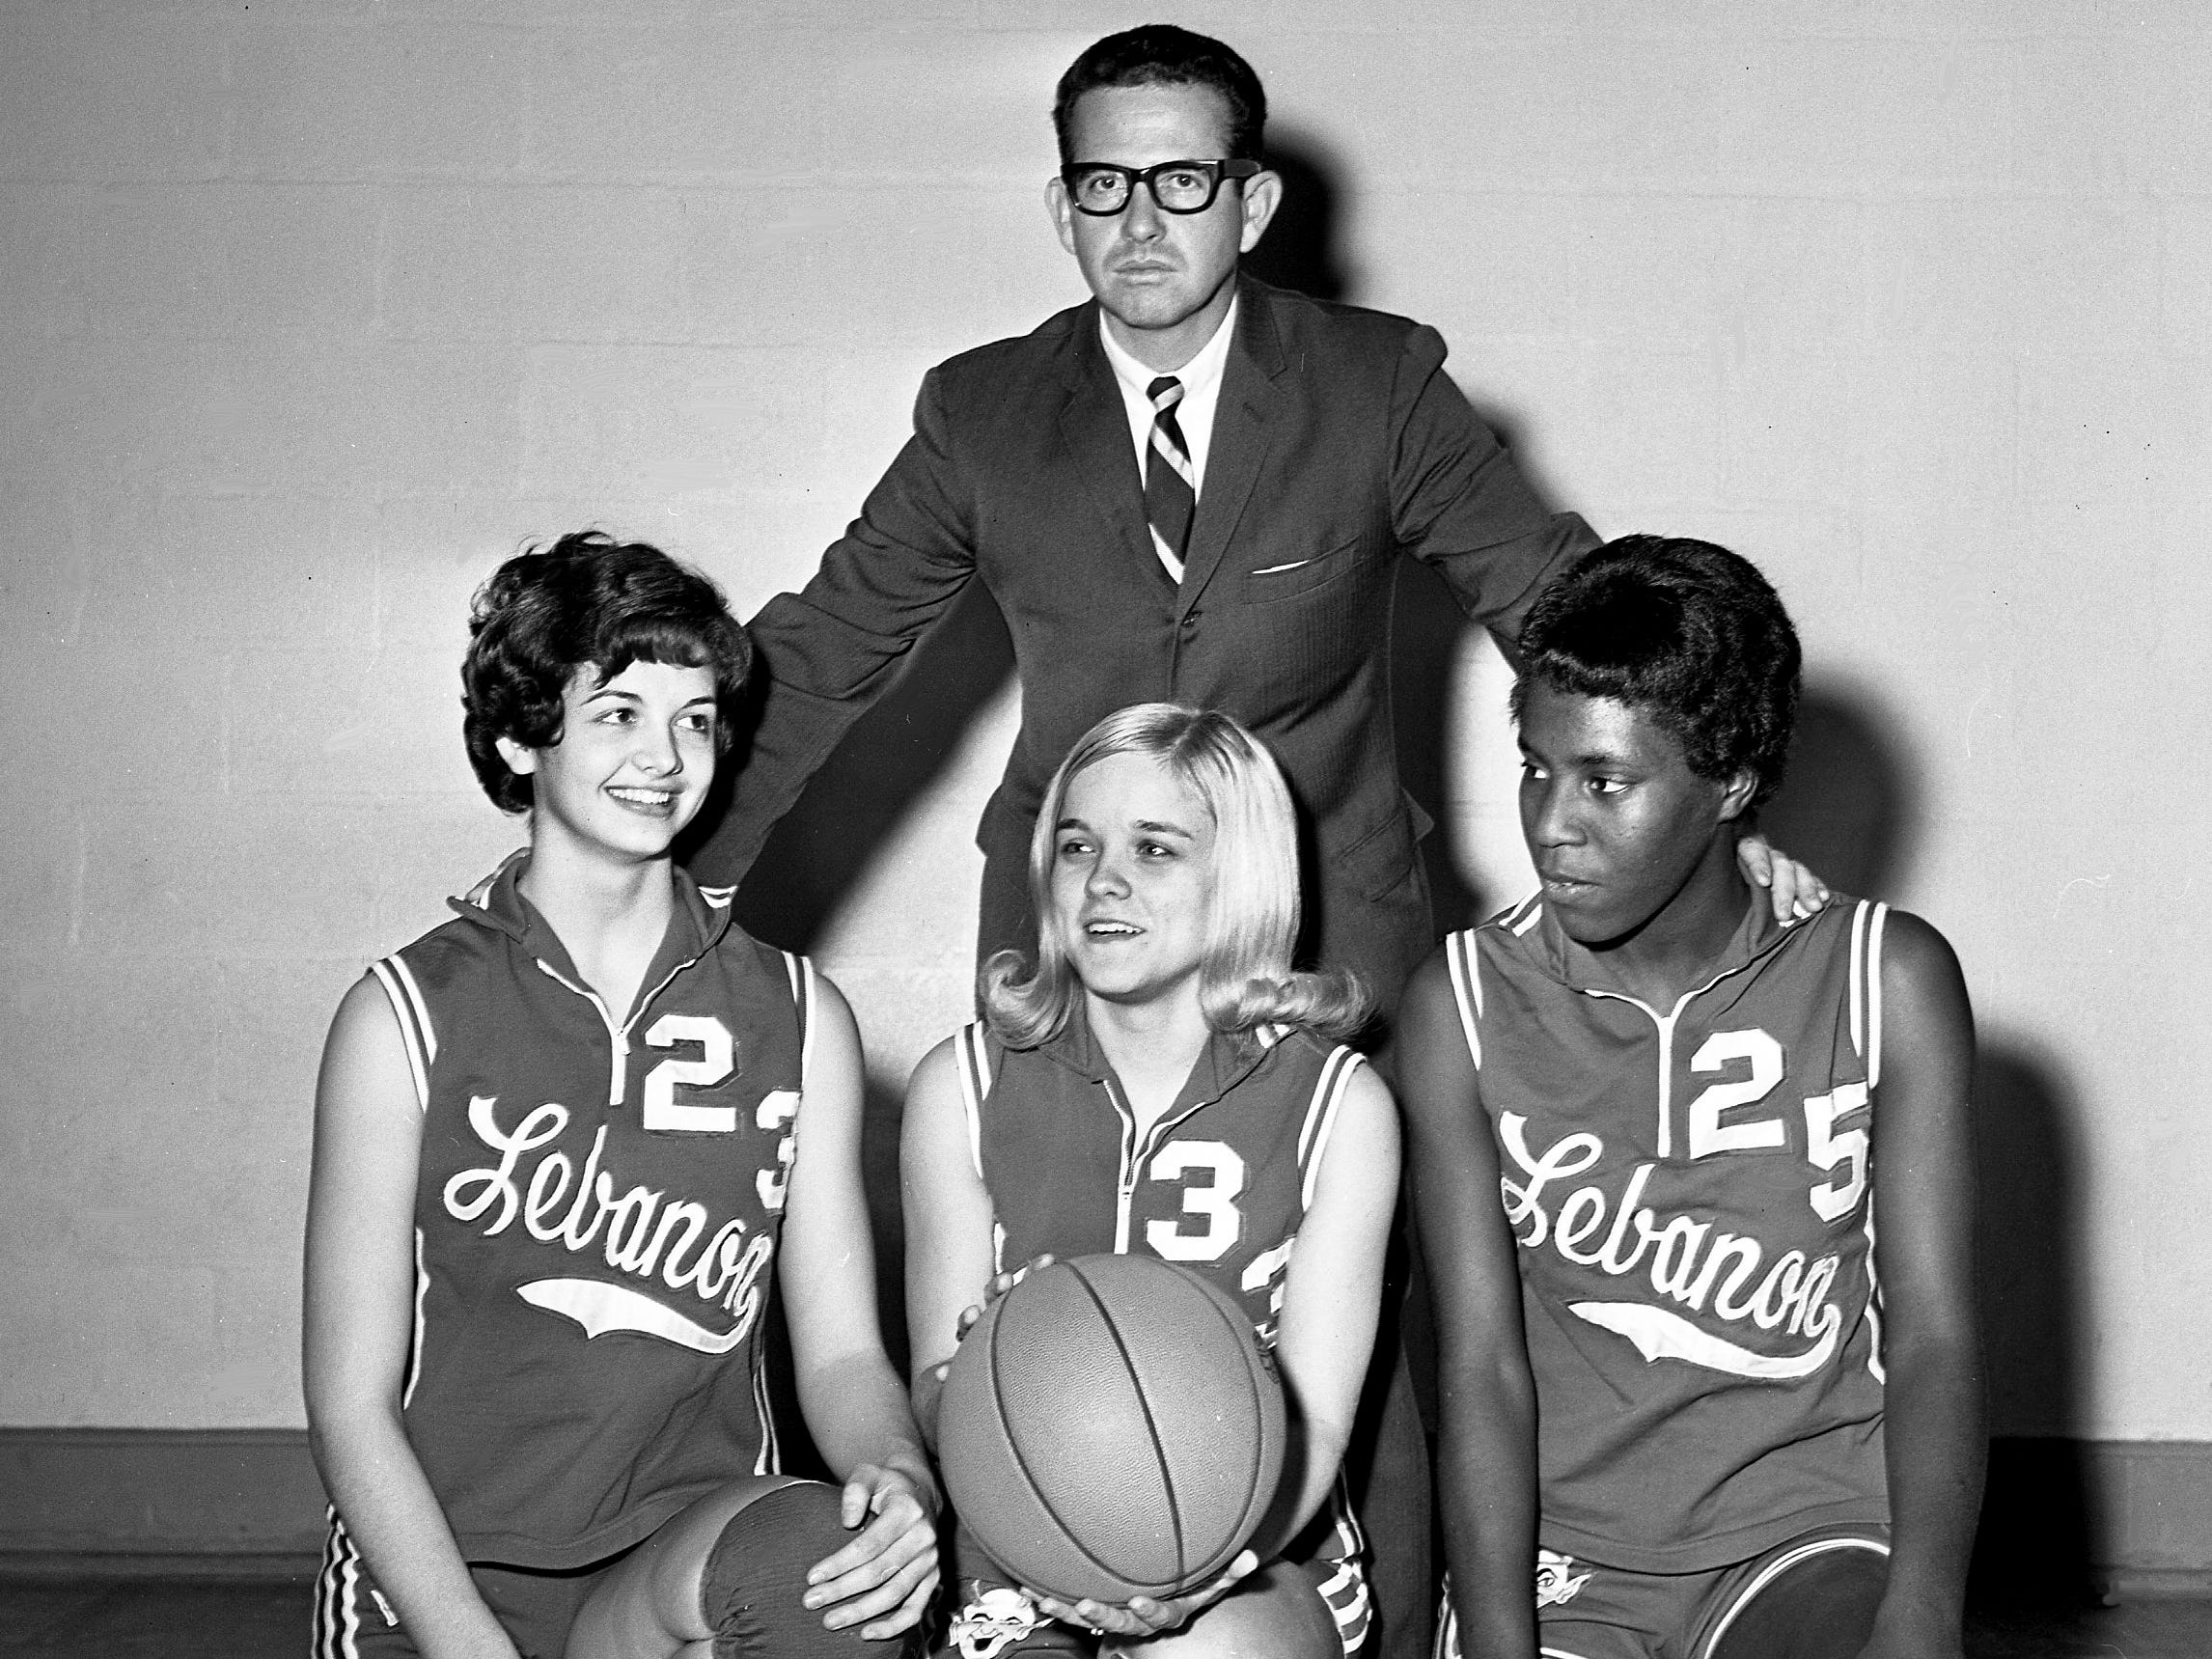 Lebanon High head coach Campbell Brandon poses with his standout defenders, Robin Donnell (23), Saundra Windham (33) and Scherie McCathern (25), at the school Jan. 2, 1969. The team has a 12-1 record so far in the season.